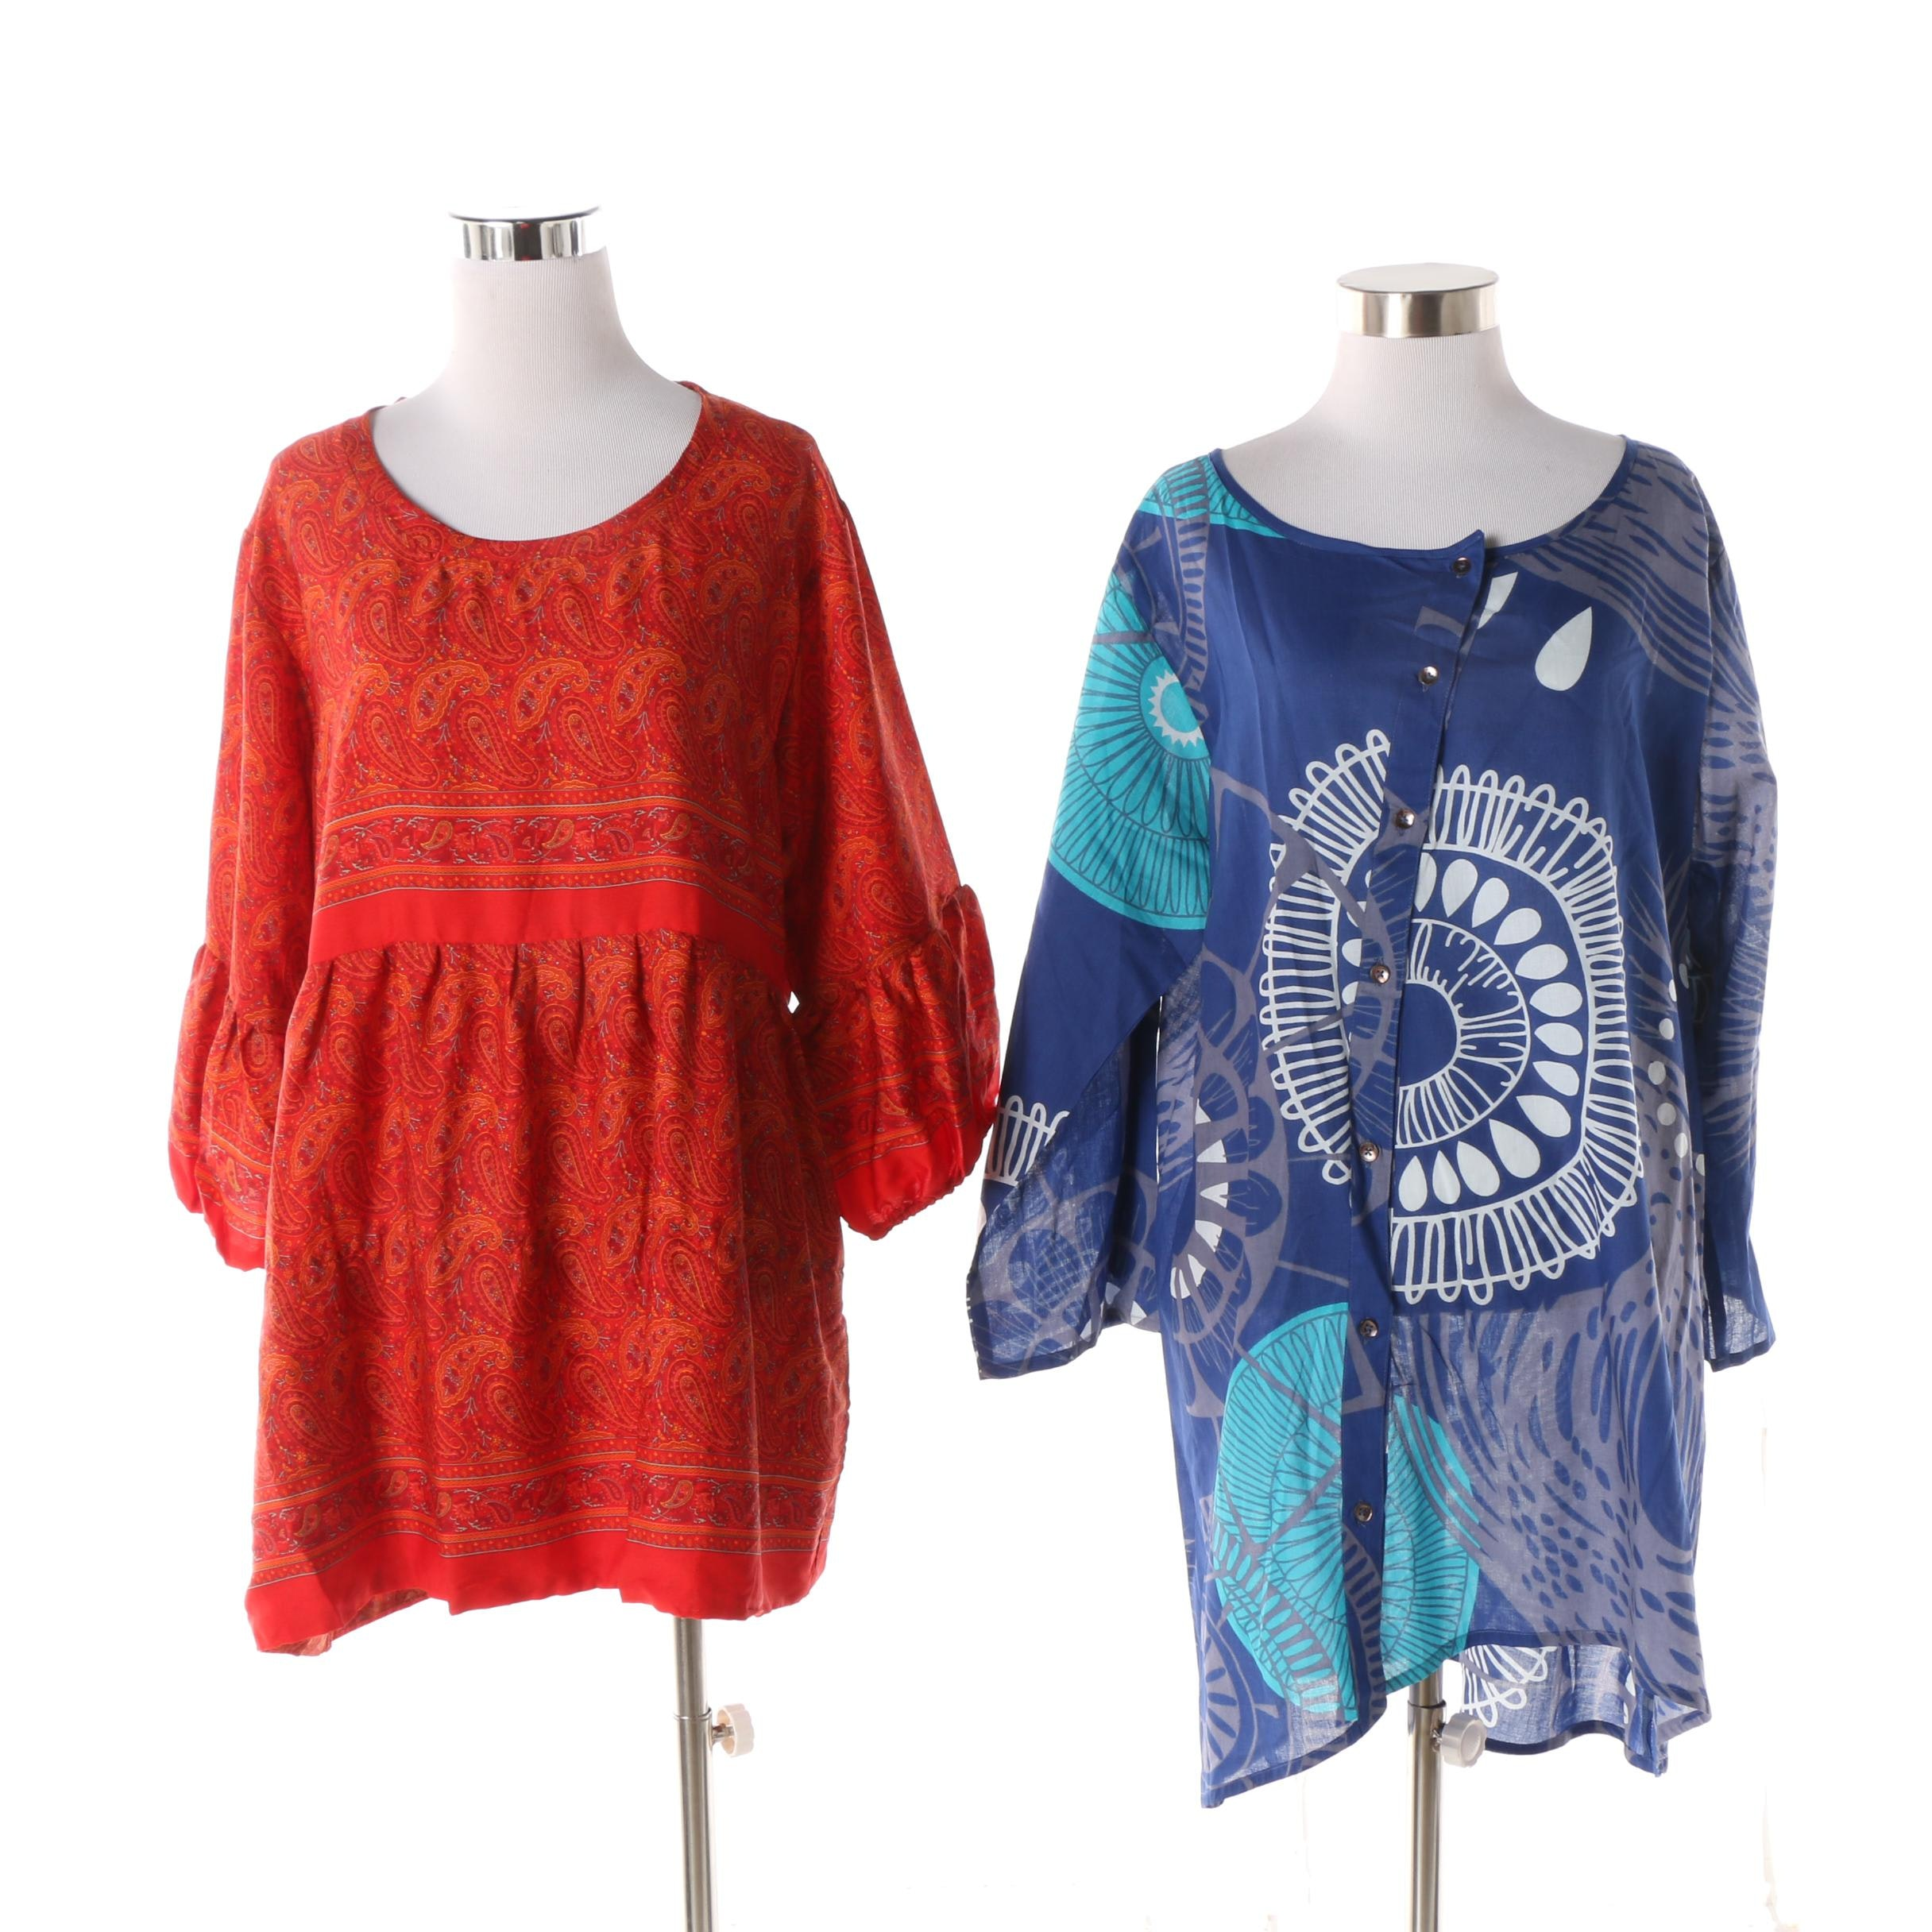 Aller Simplement Paisley and Mandala Print Tunic Tops